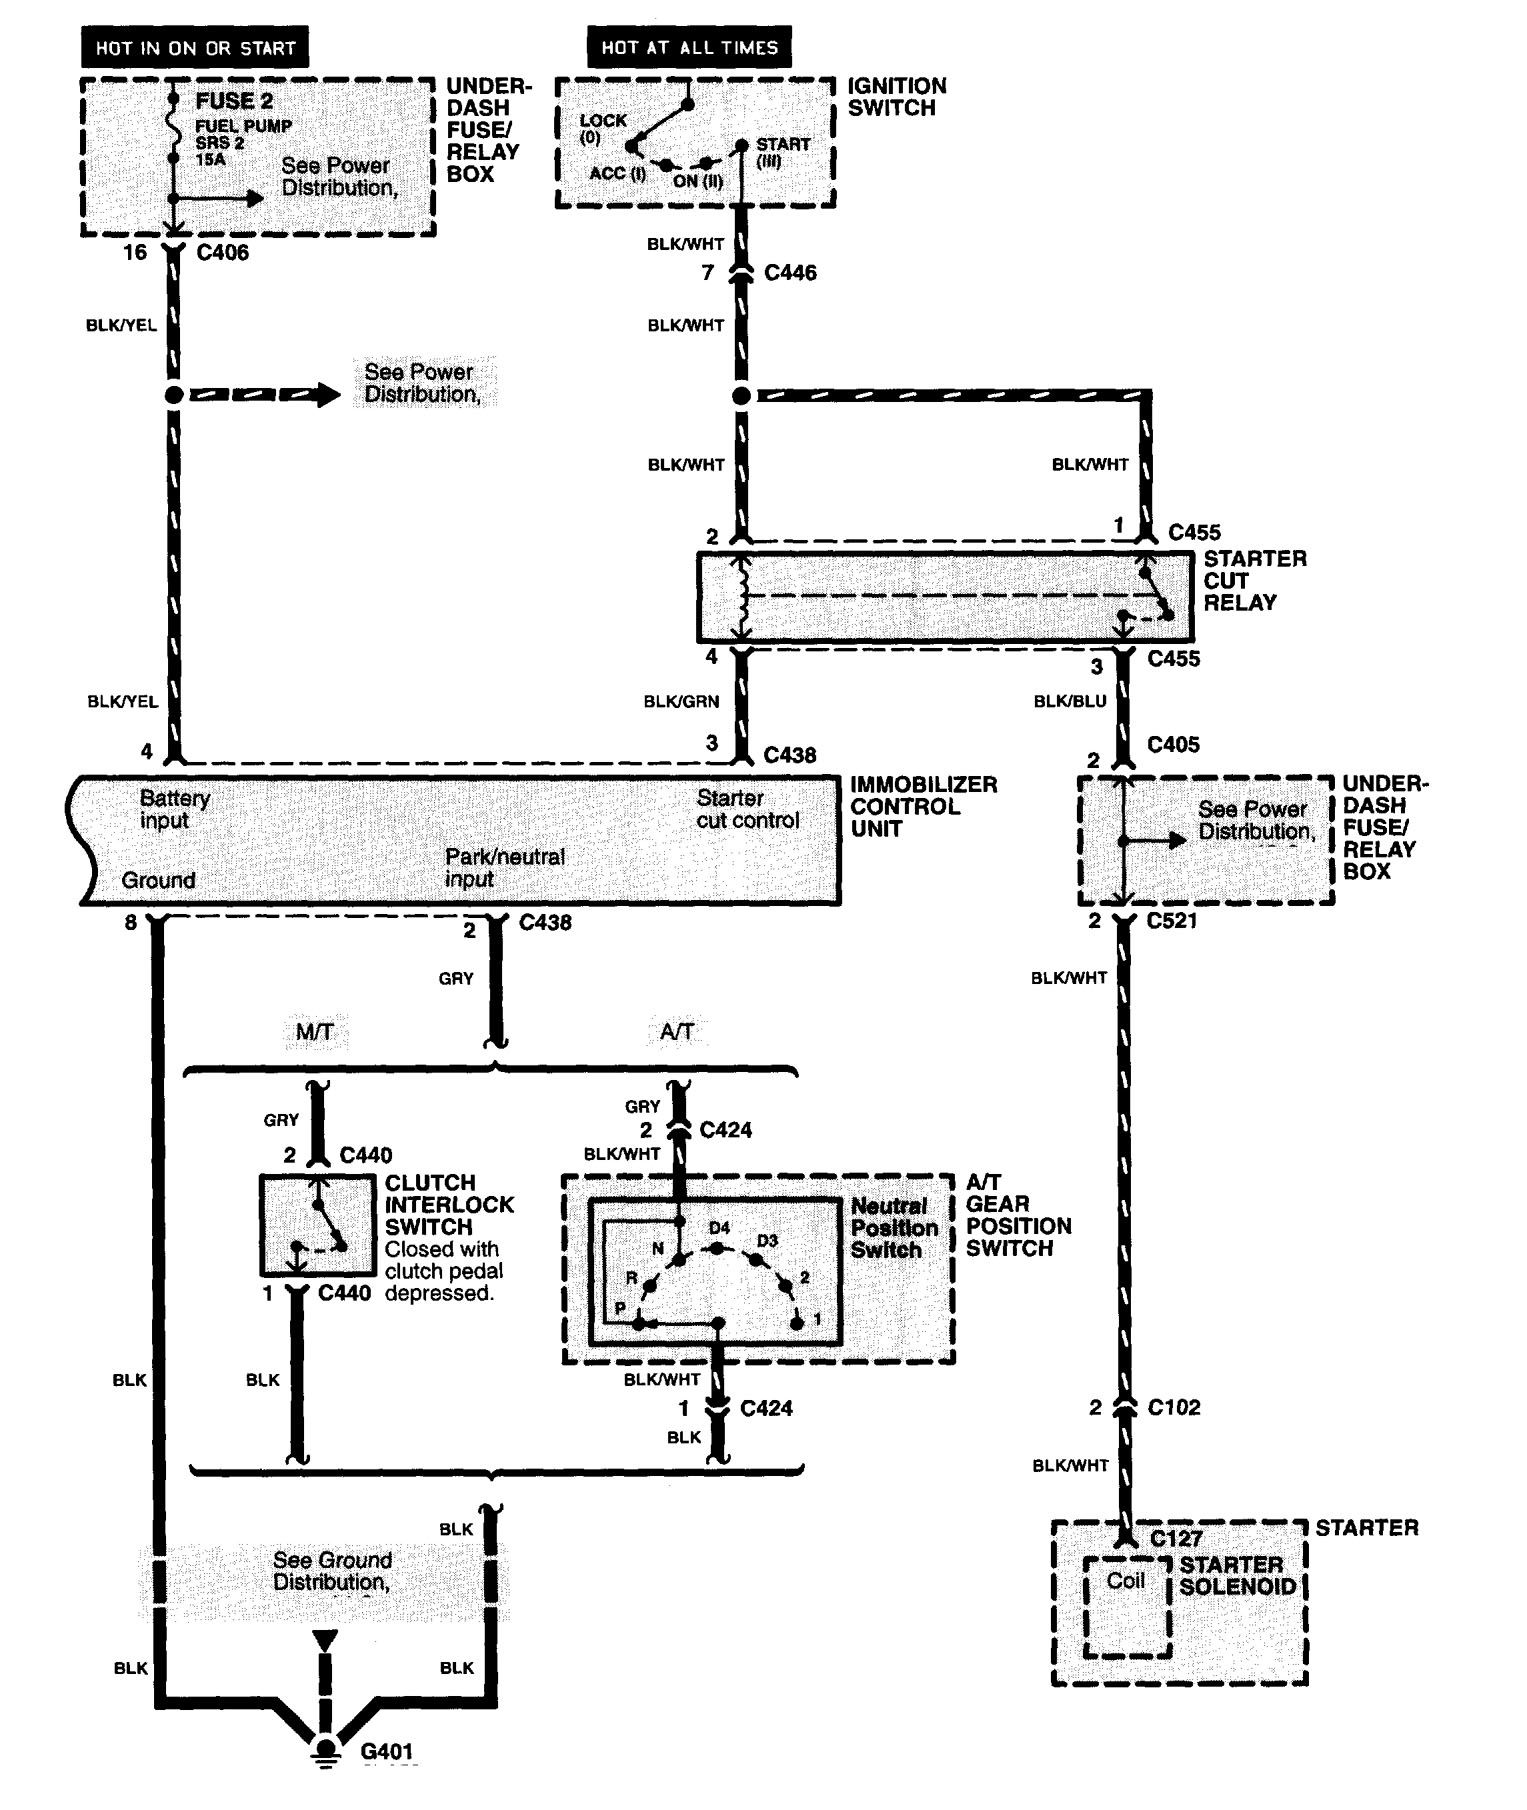 alarm wiring diagram for 1997 mustang acura nsx (1997 - 2004) - wiring diagrams - security/anti ...